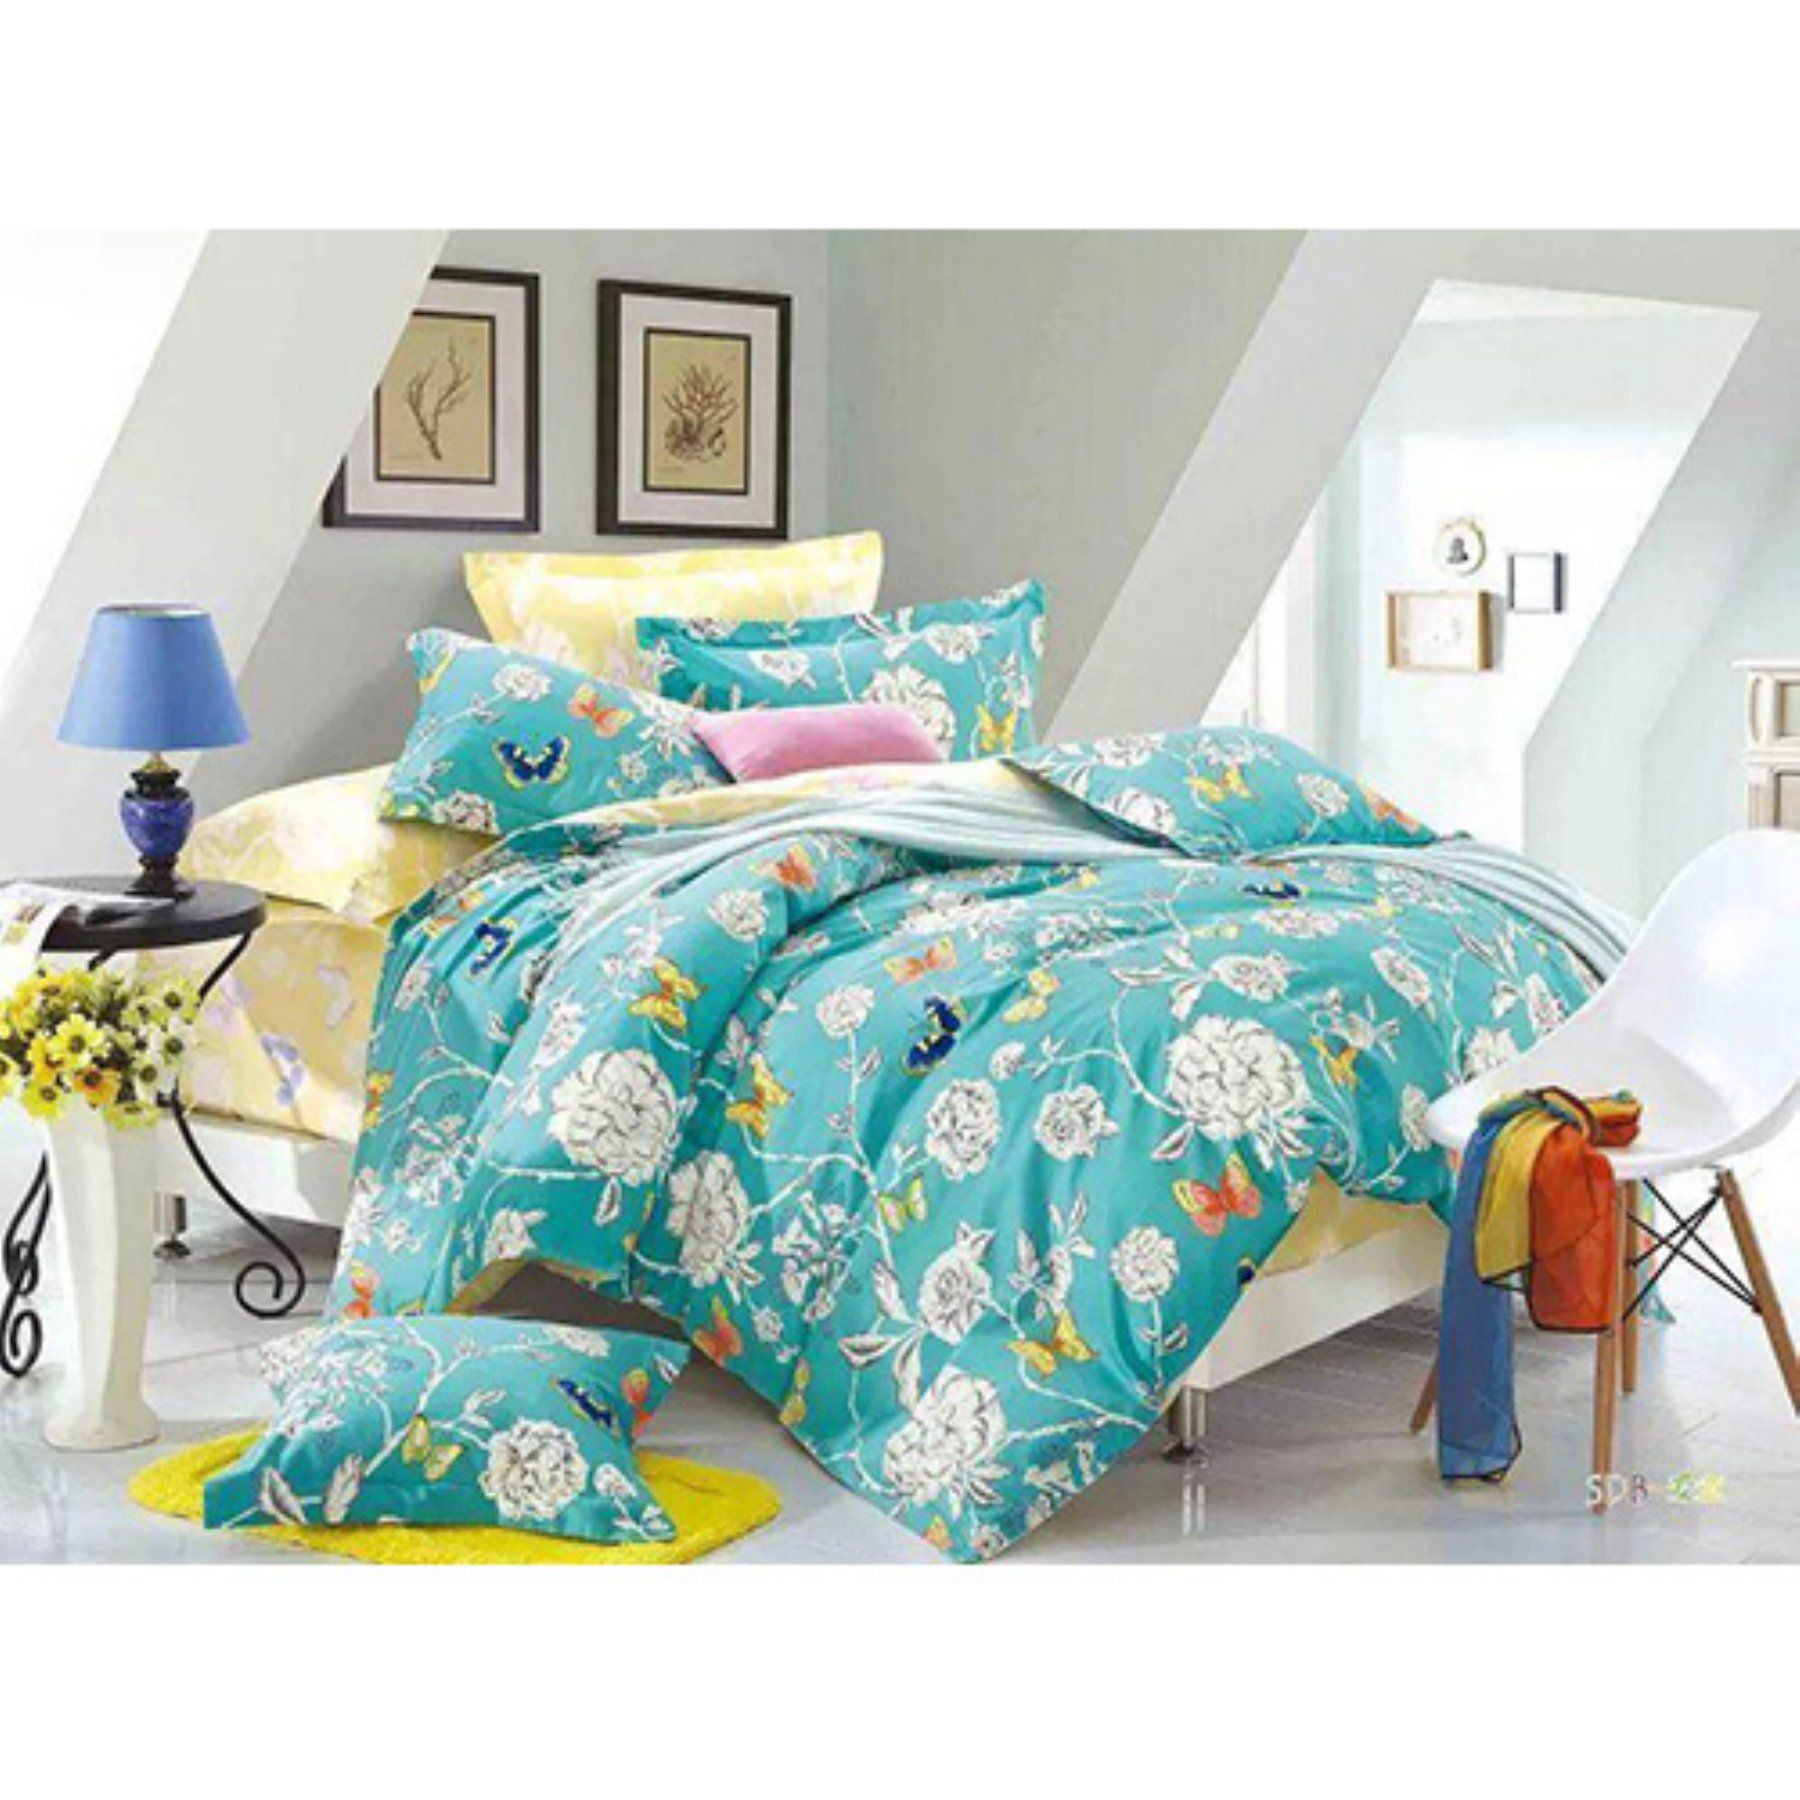 Butterfly Wonderland Duvet Cover Set By Tache Home Fashion